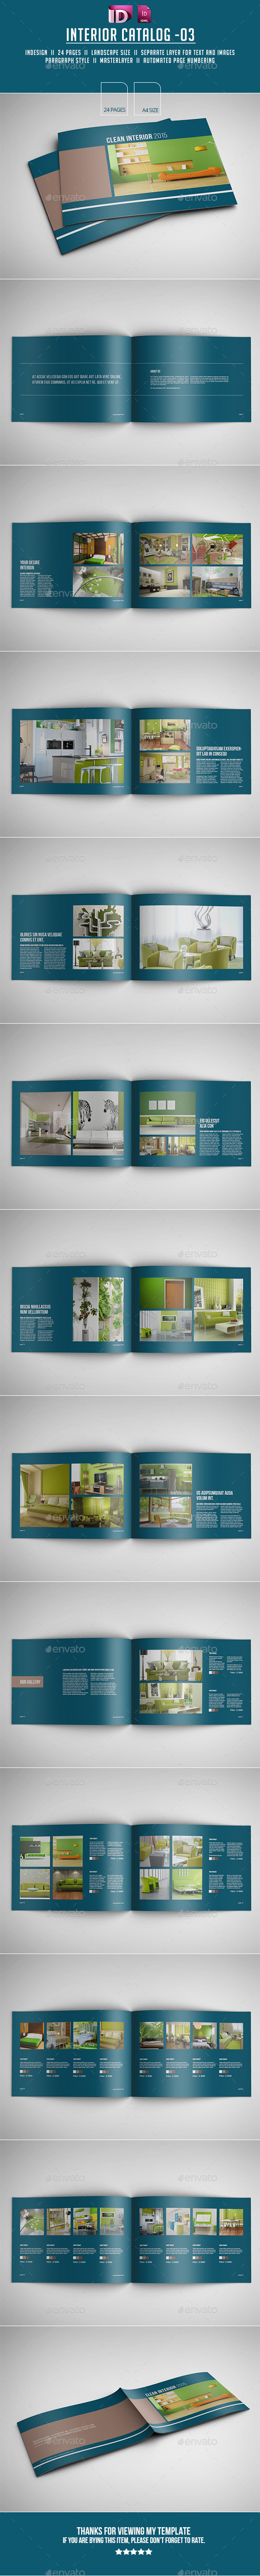 GraphicRiver Interior Catalog 02 11928168